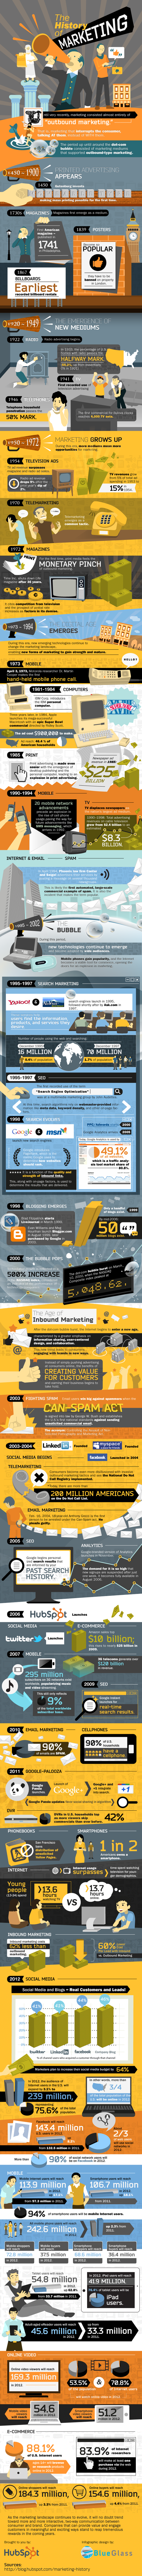 history of marketing evolution